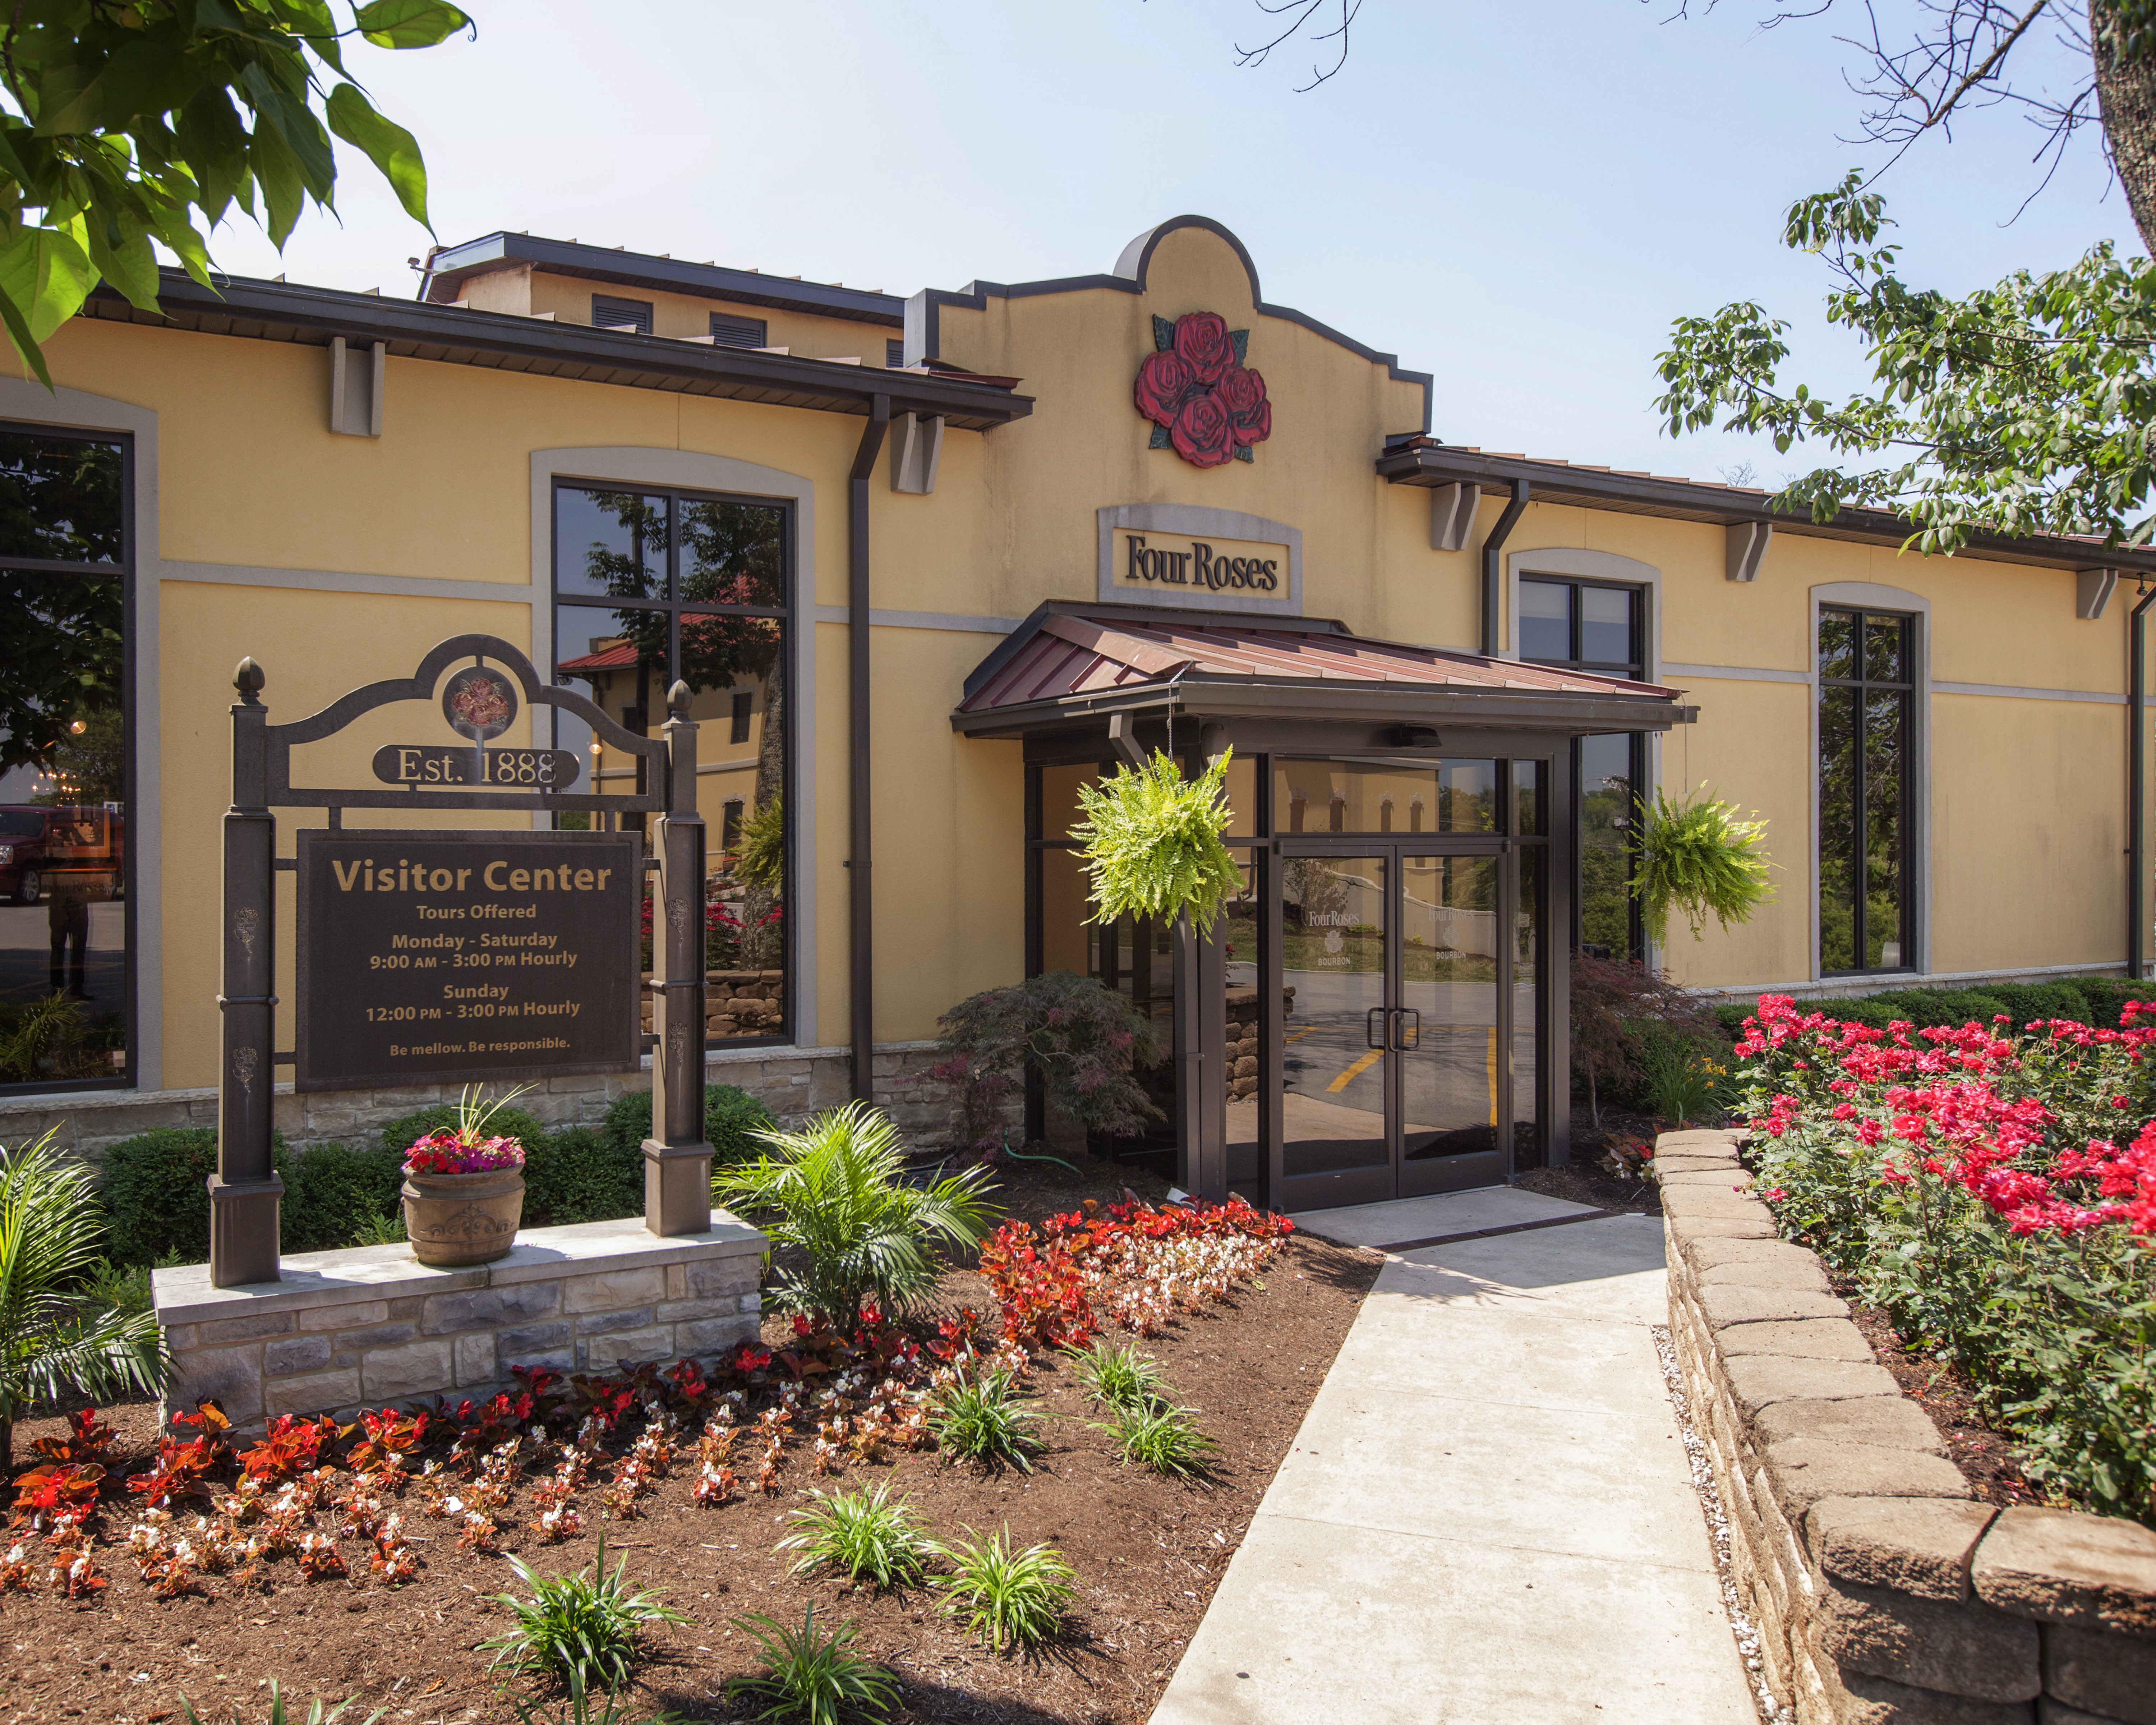 Stay At Our Hotel Near The Four Roses Distillery